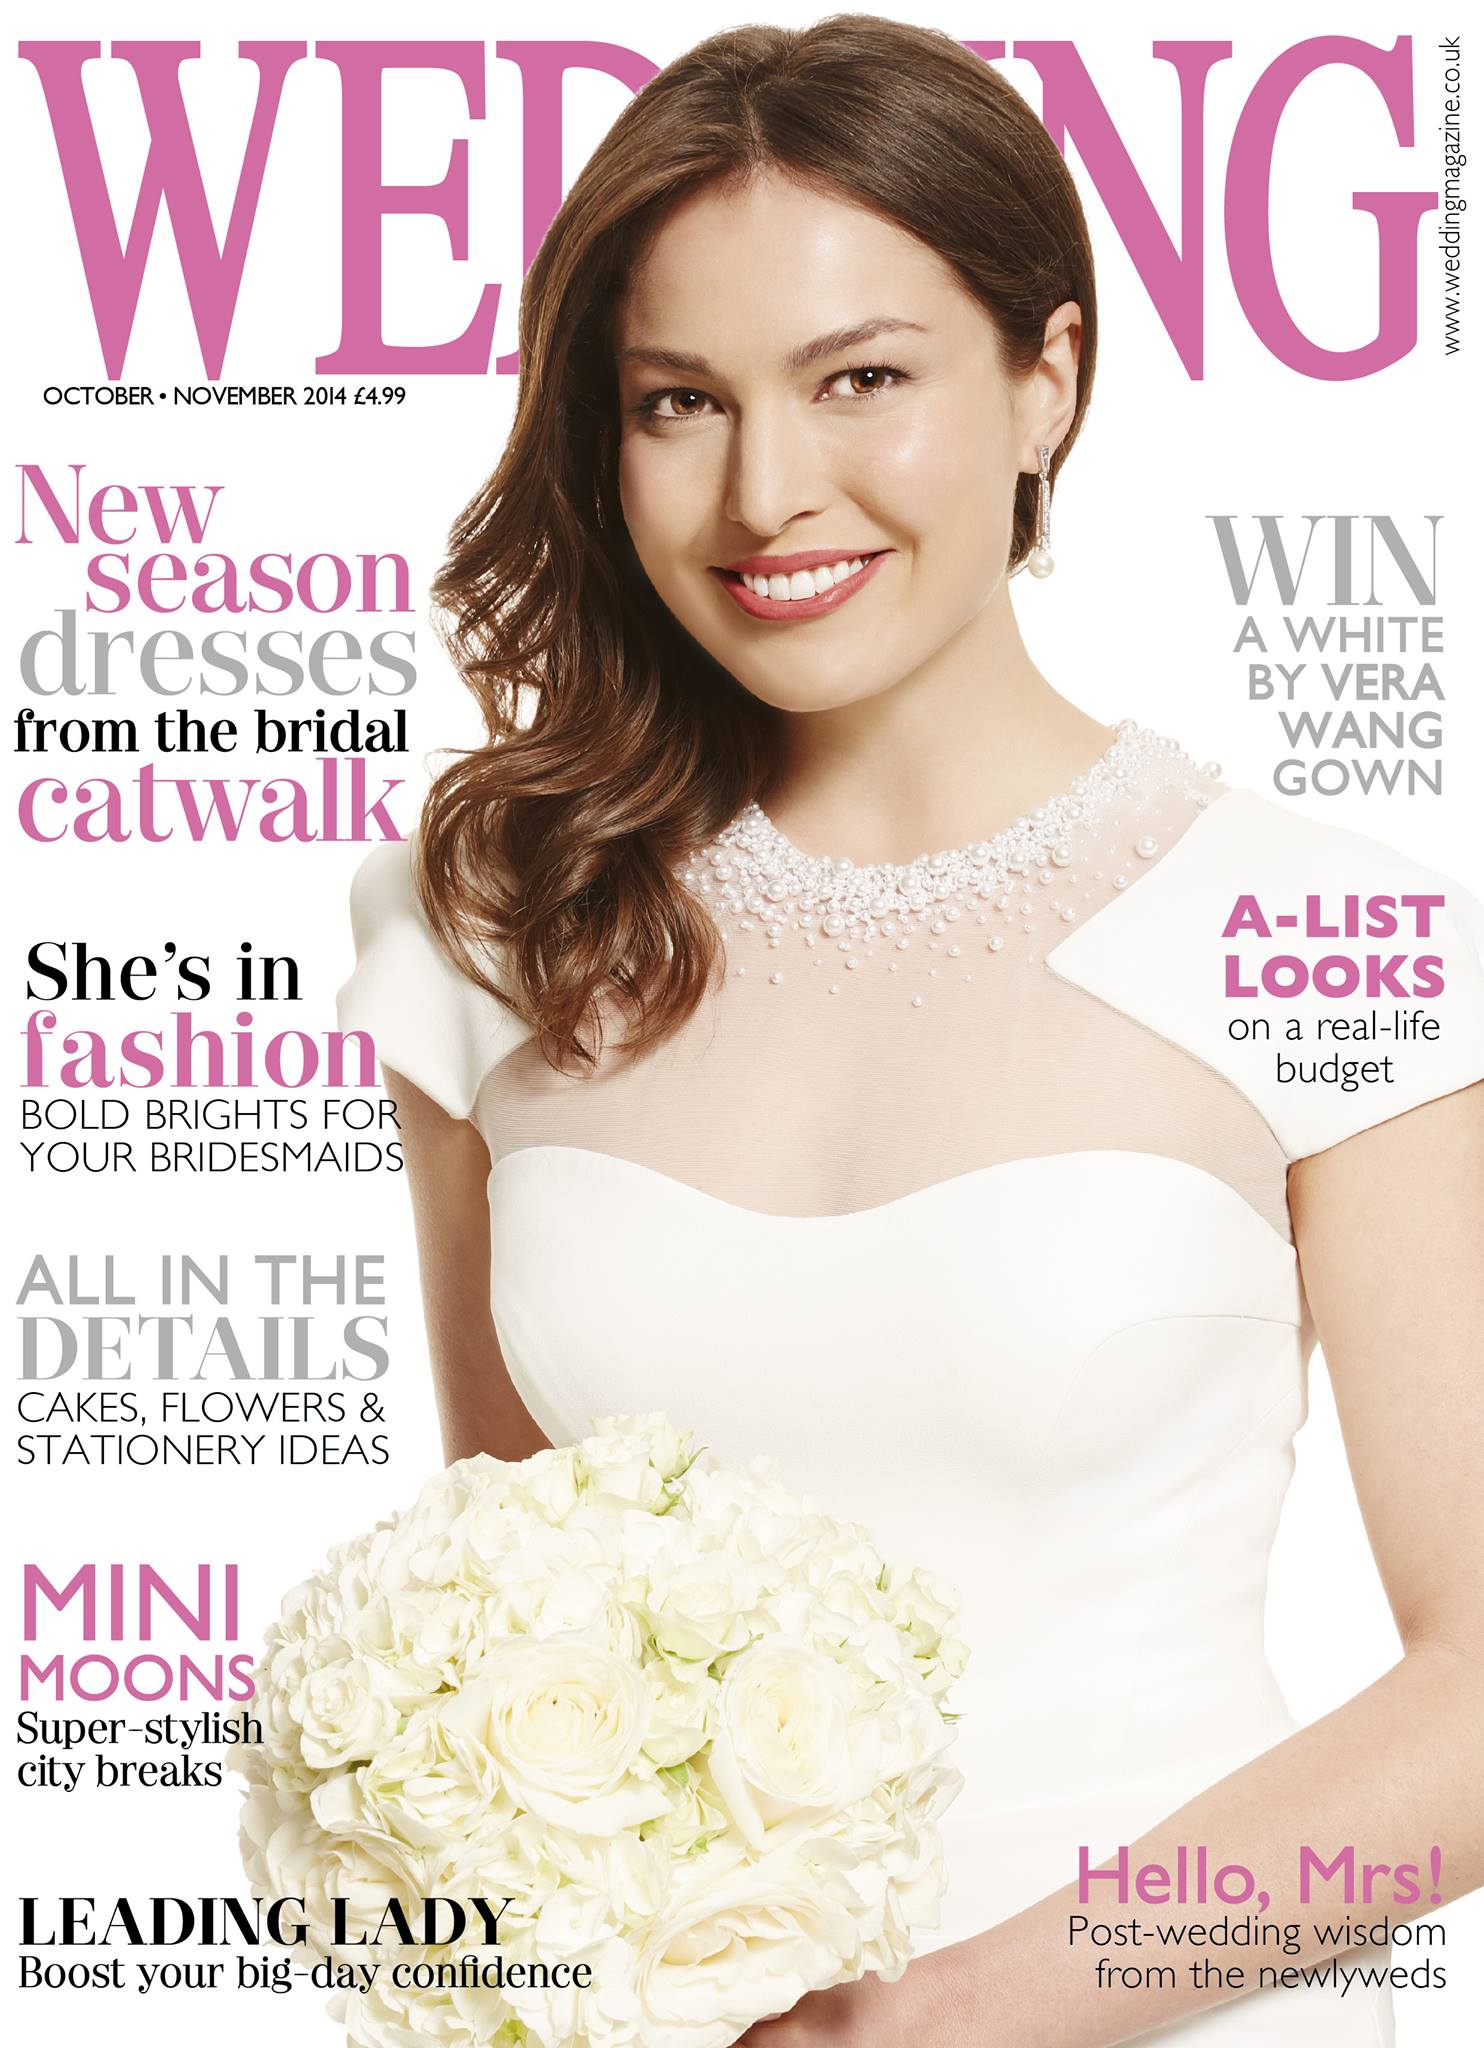 Nu Brid in Wedding Magazine